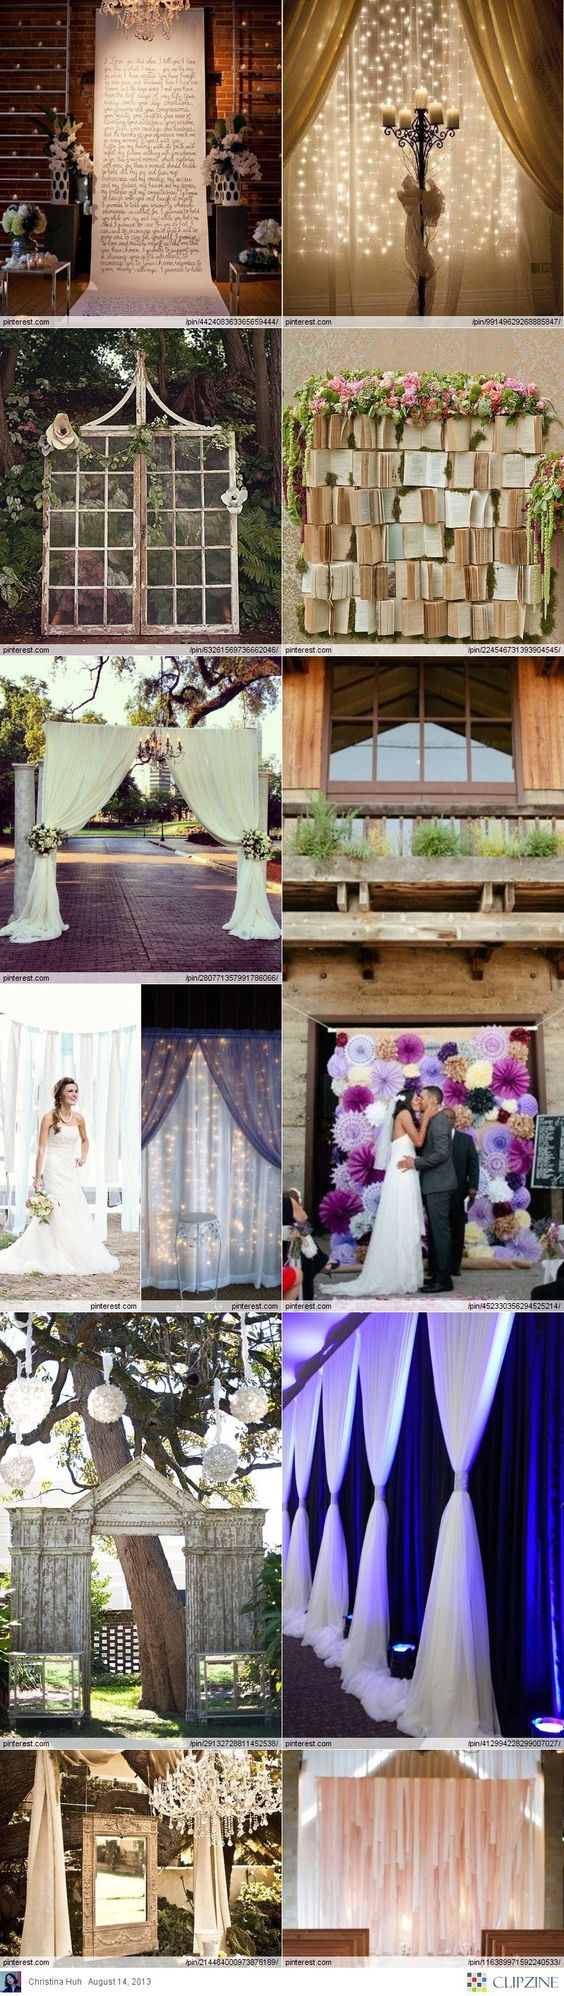 Wedding backdrop diy ideas a book backdrop how sweet is that